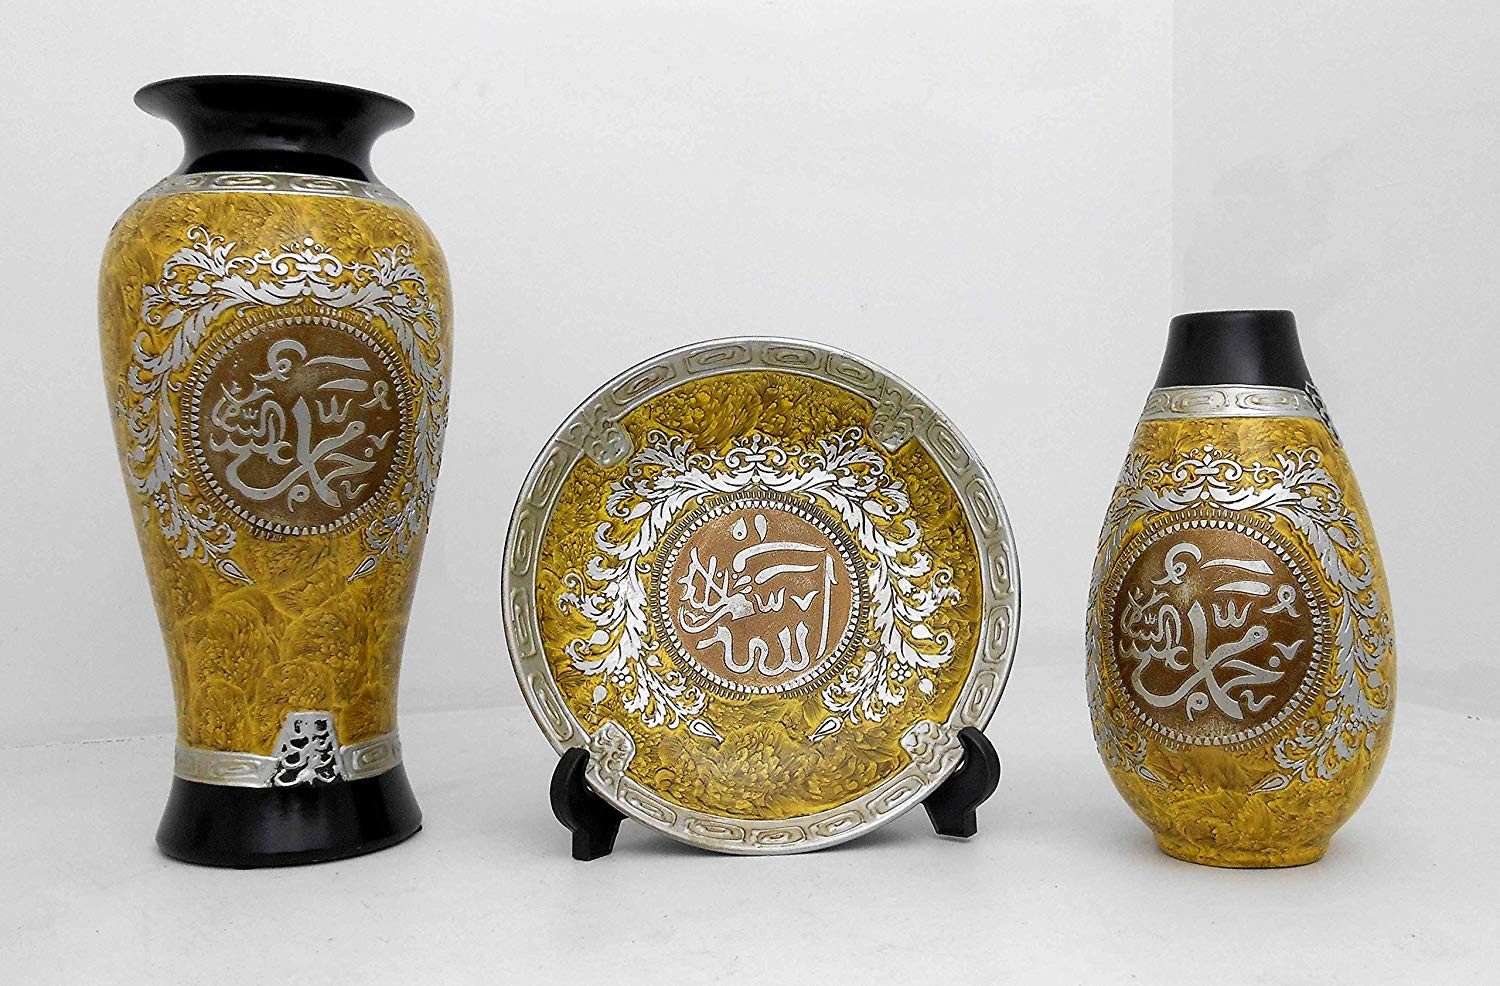 Antique Glass Vases for Sale Of Amazon Com islamic Muslim Set Brown Ceramic Vase Allah Mohammad Throughout Amazon Com islamic Muslim Set Brown Ceramic Vase Allah Mohammad Home Decorative 1657 Home Kitchen